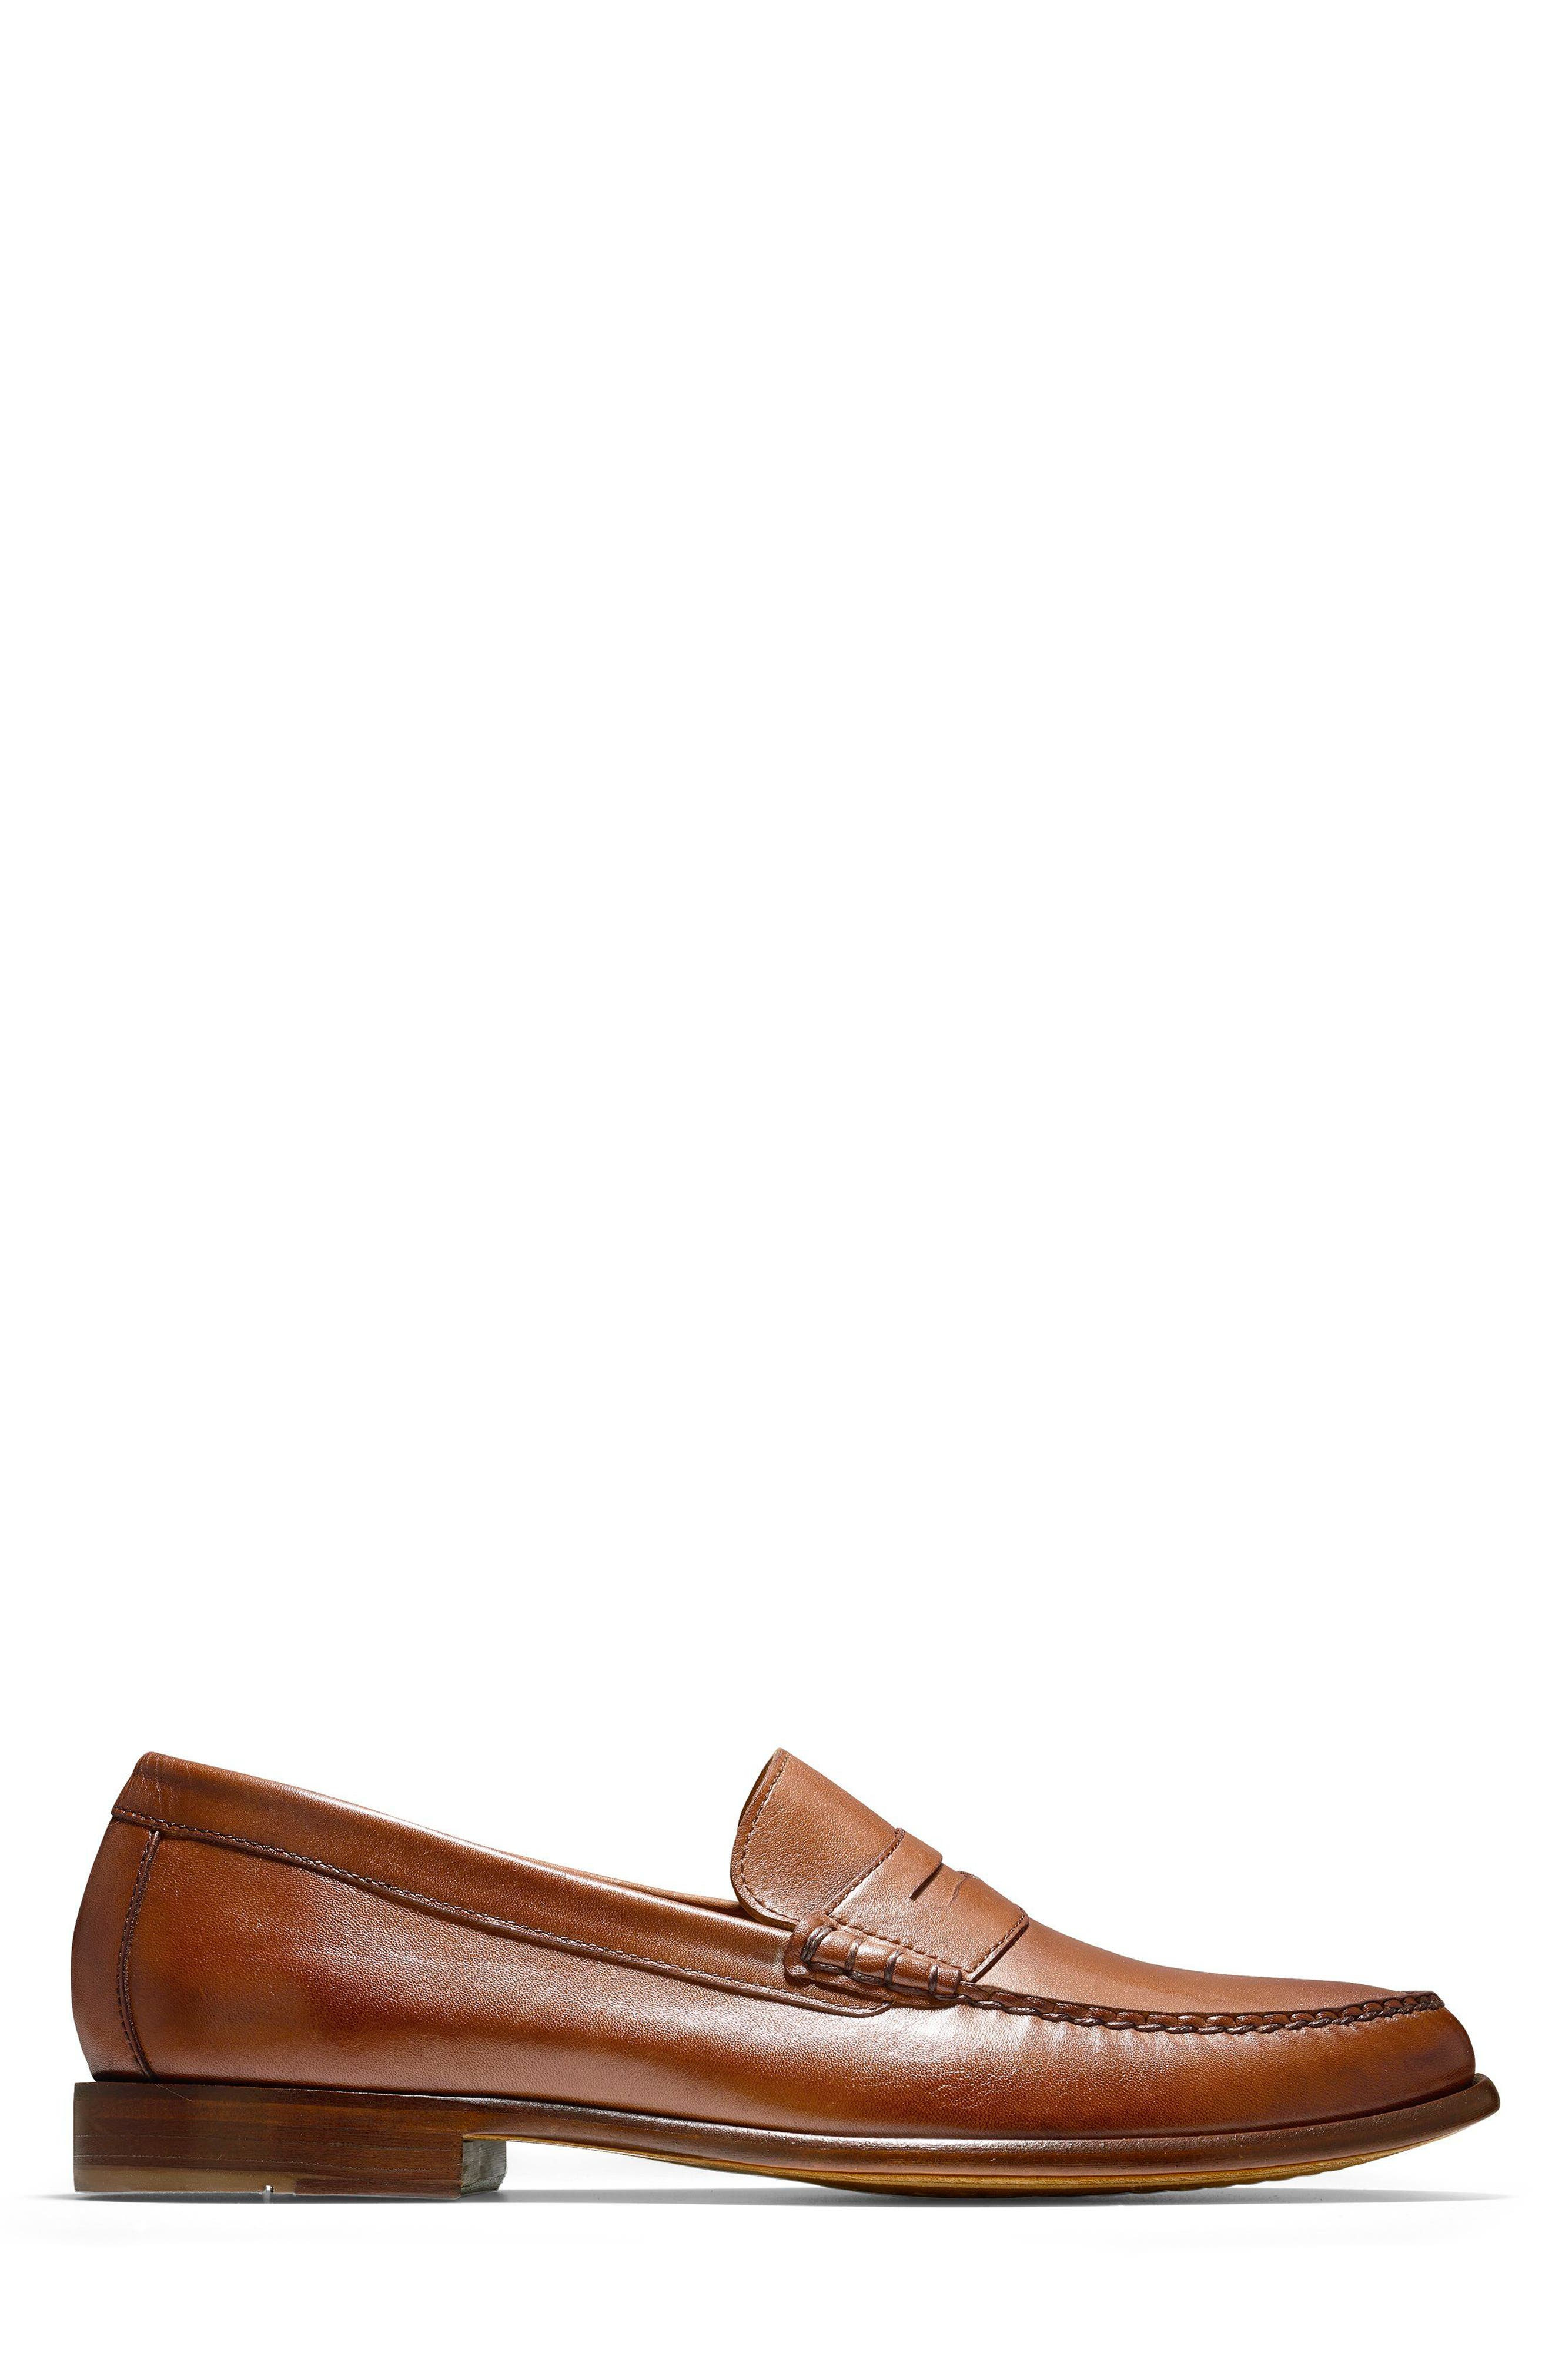 Pinch Penny Loafer,                             Alternate thumbnail 3, color,                             200